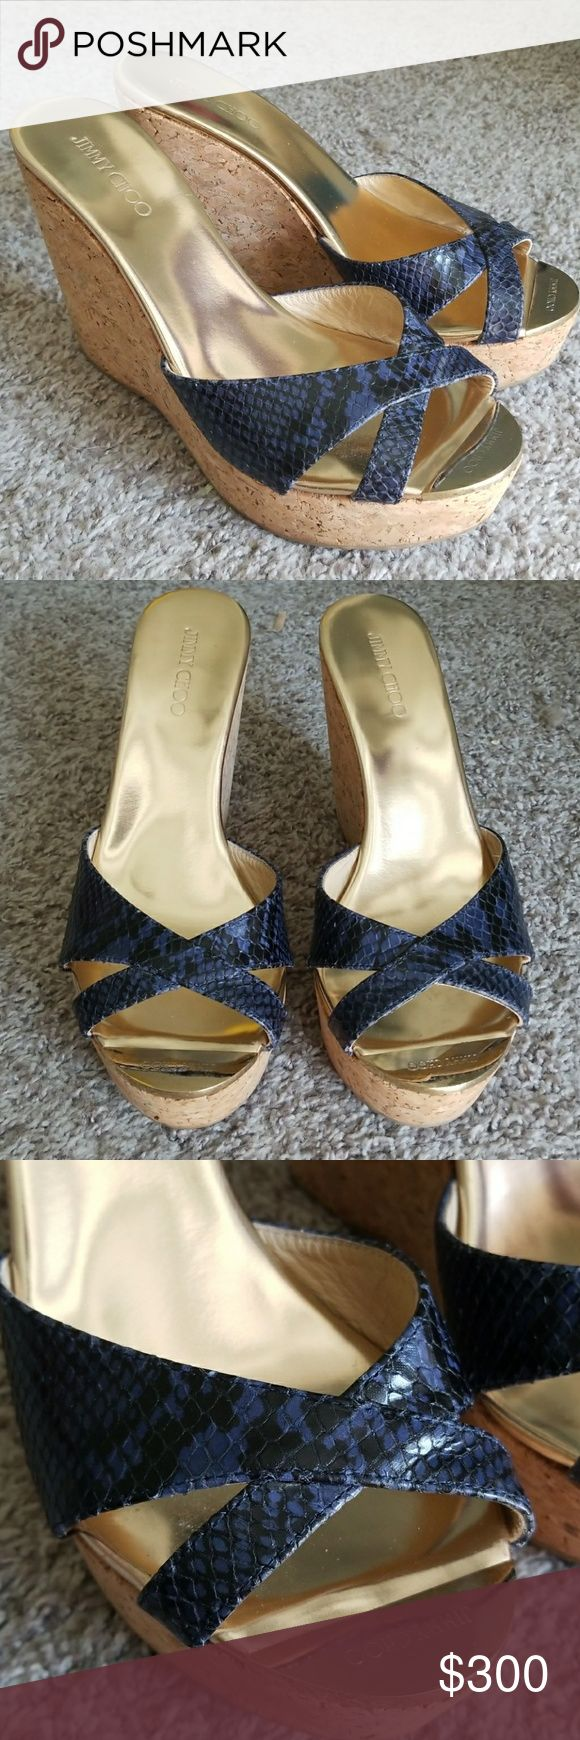 Jimmy Choo Wedges Authentic Jimmy Choo Perfume Patent Leather Crisscross Wedges Size 38 These have only been worn once! Jimmy Choo runs half a size small. Blue and black Snake Python Print. Pandora Sandals. Missing the box.  Please use the offer button for all offers! Clean, smoke free home. Jimmy Choo Shoes Wedges